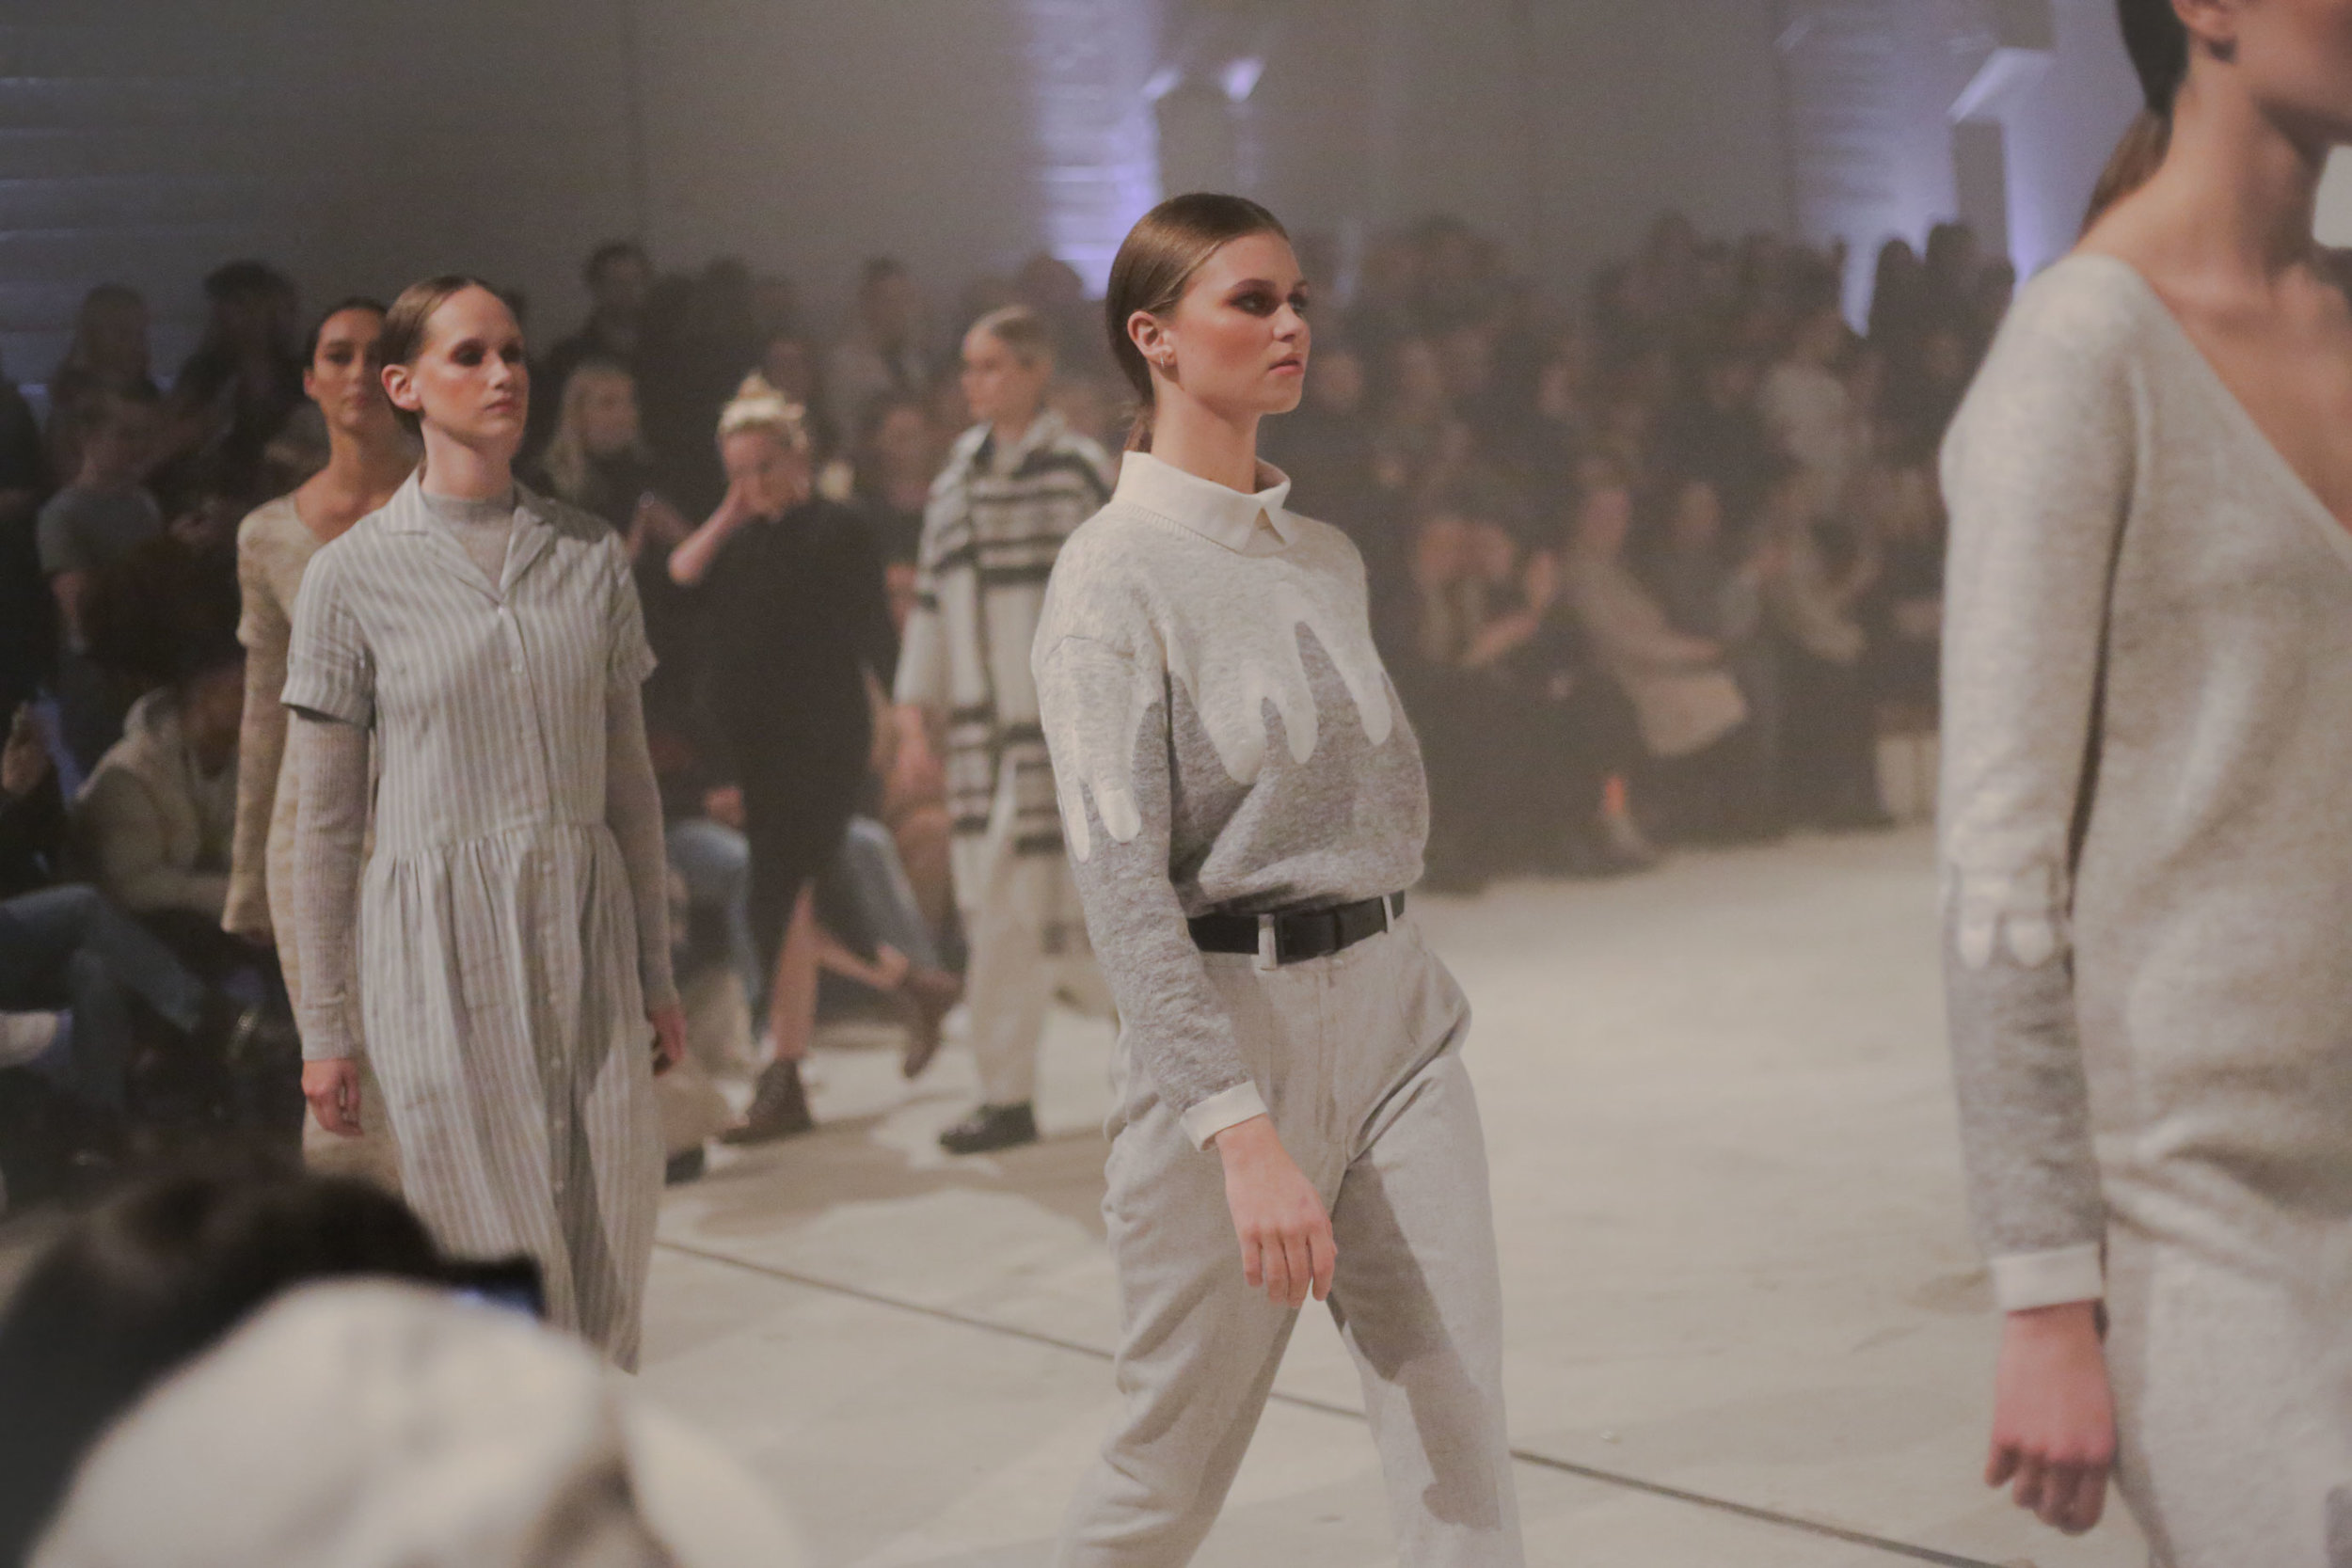 The fashion brand Geysir fashion show under Reykjavik fashion week summer 2017.  Wool garments designed with inspiration from the Icelandic nature.